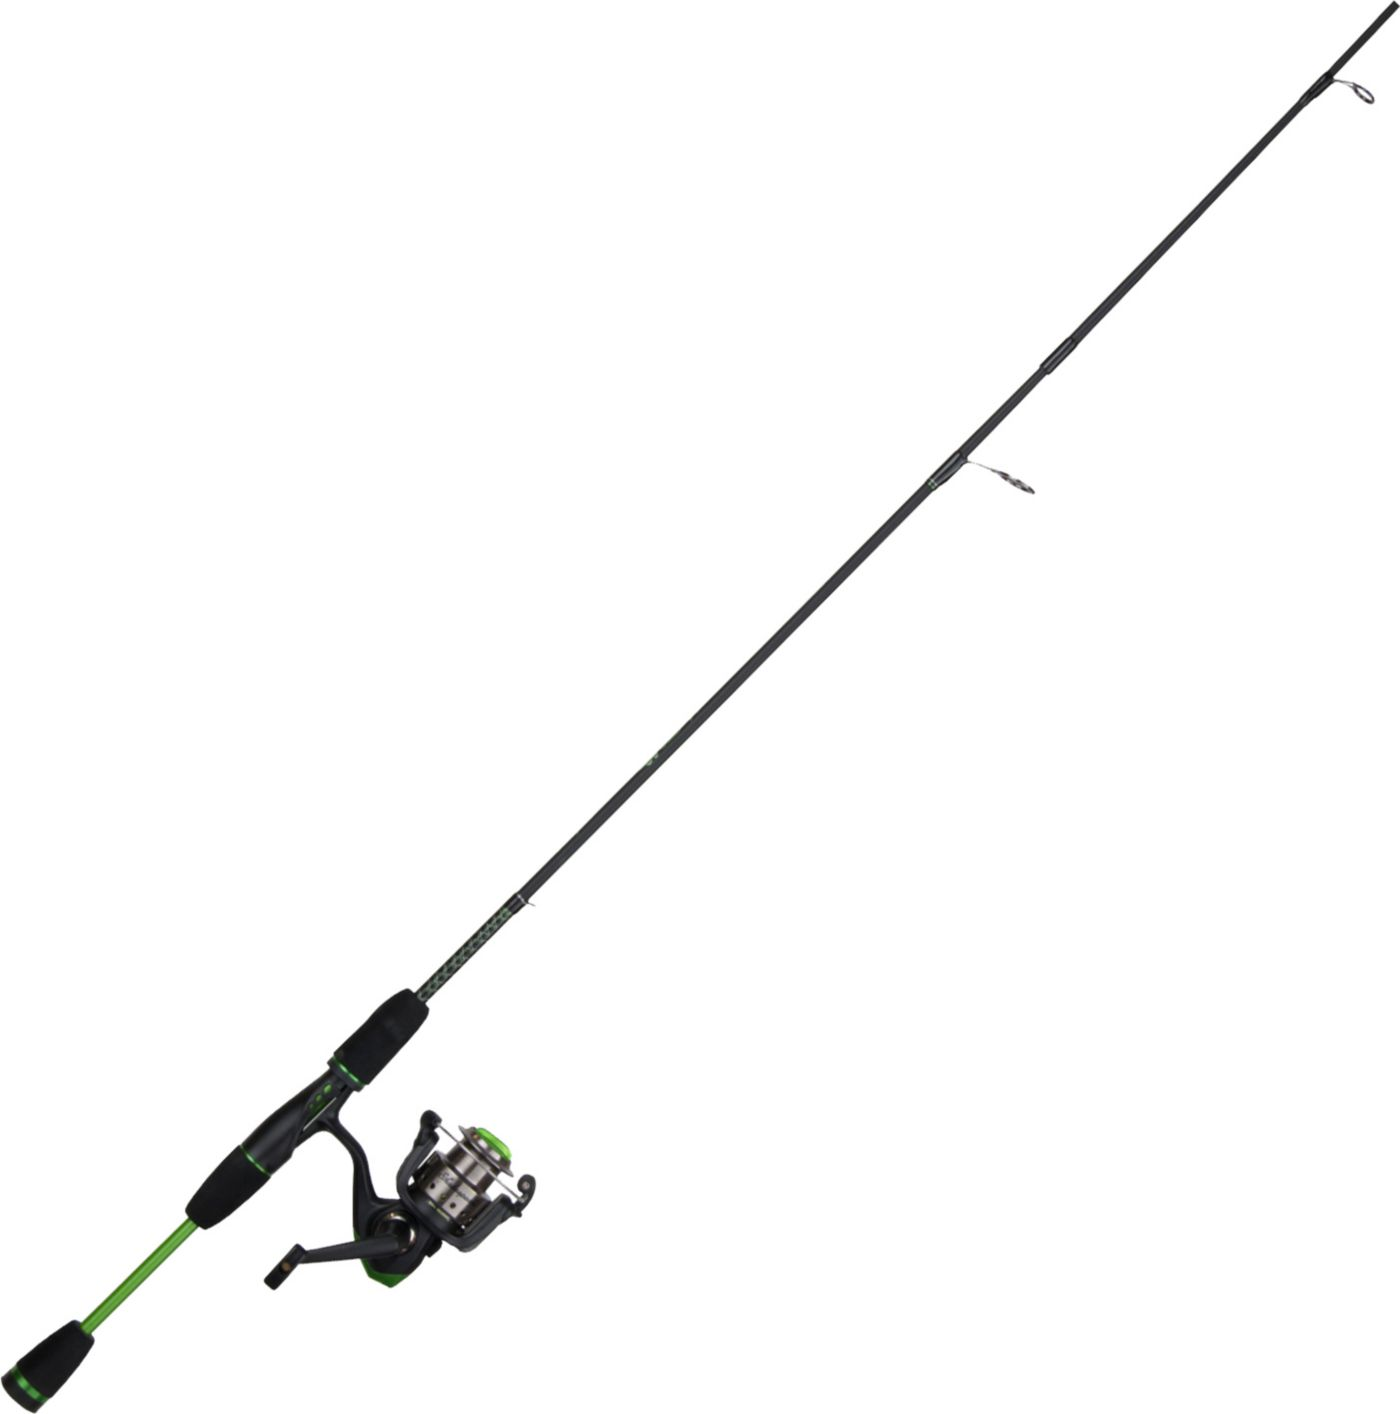 Shakespeare Youth Ugly Stik GX2 Spinning Combo